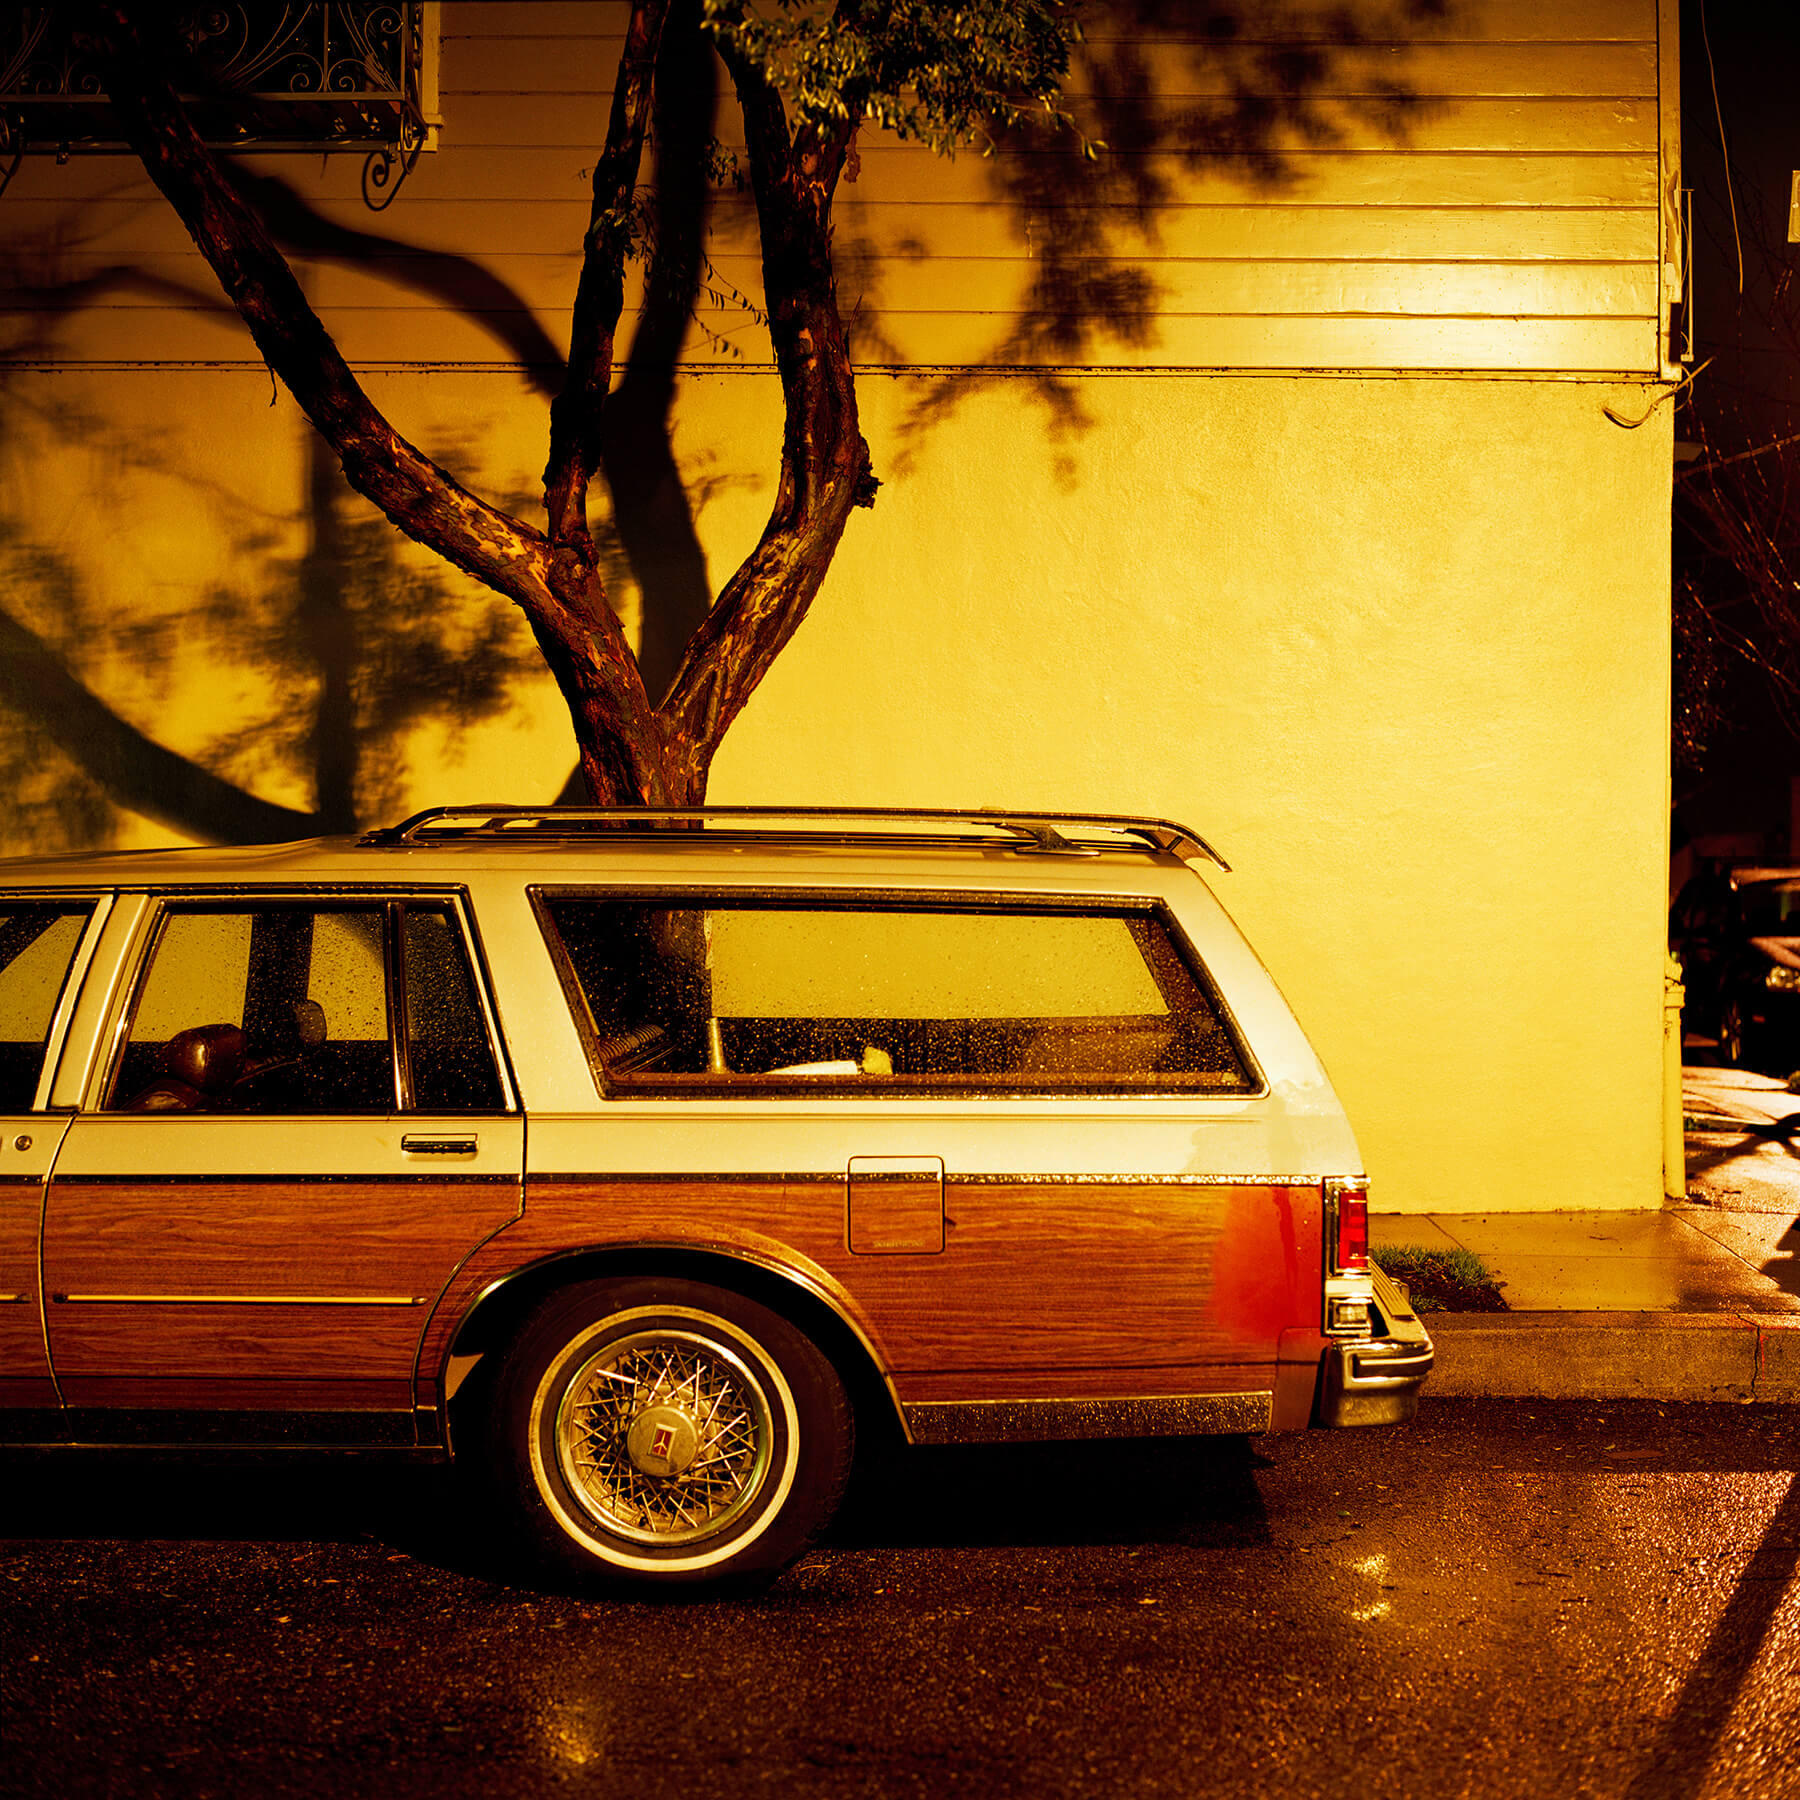 Station wagon at night, Bernal Heights, San Francisco